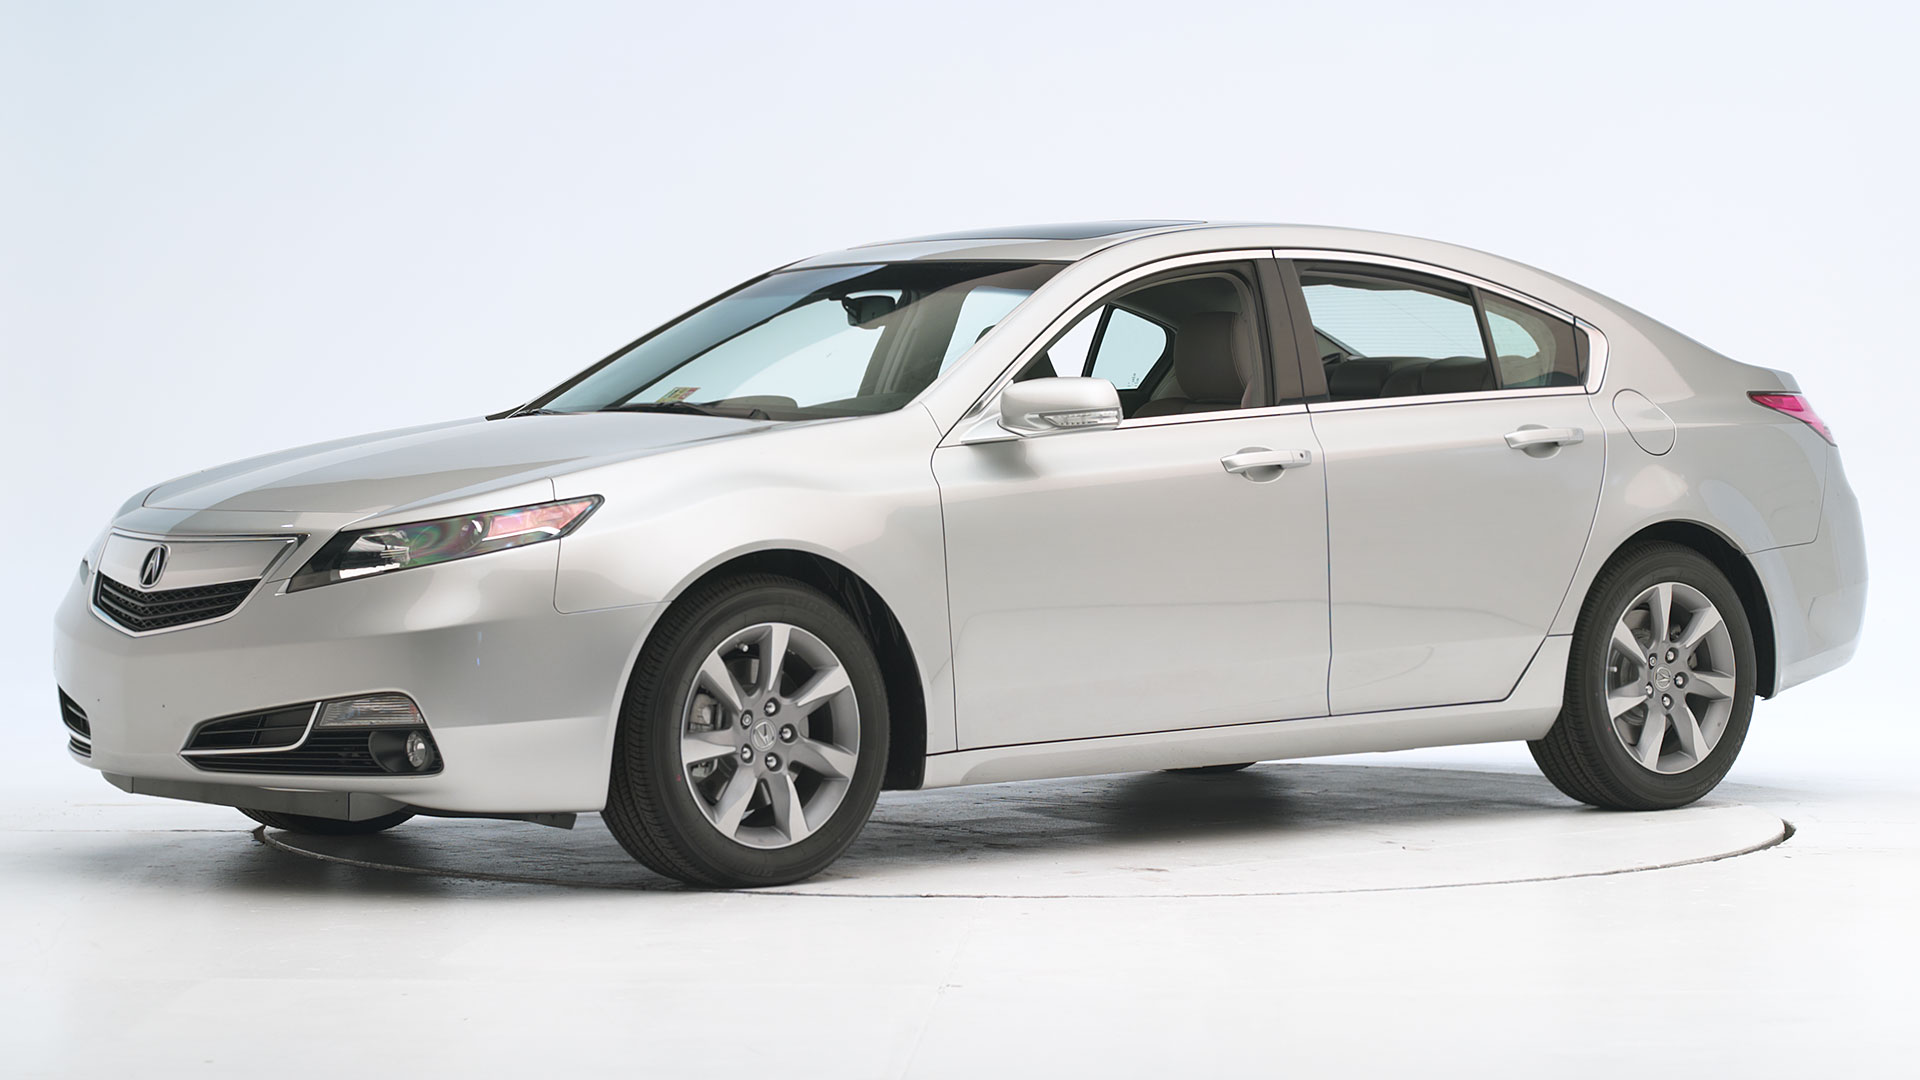 2012 Acura TL 4-door sedan